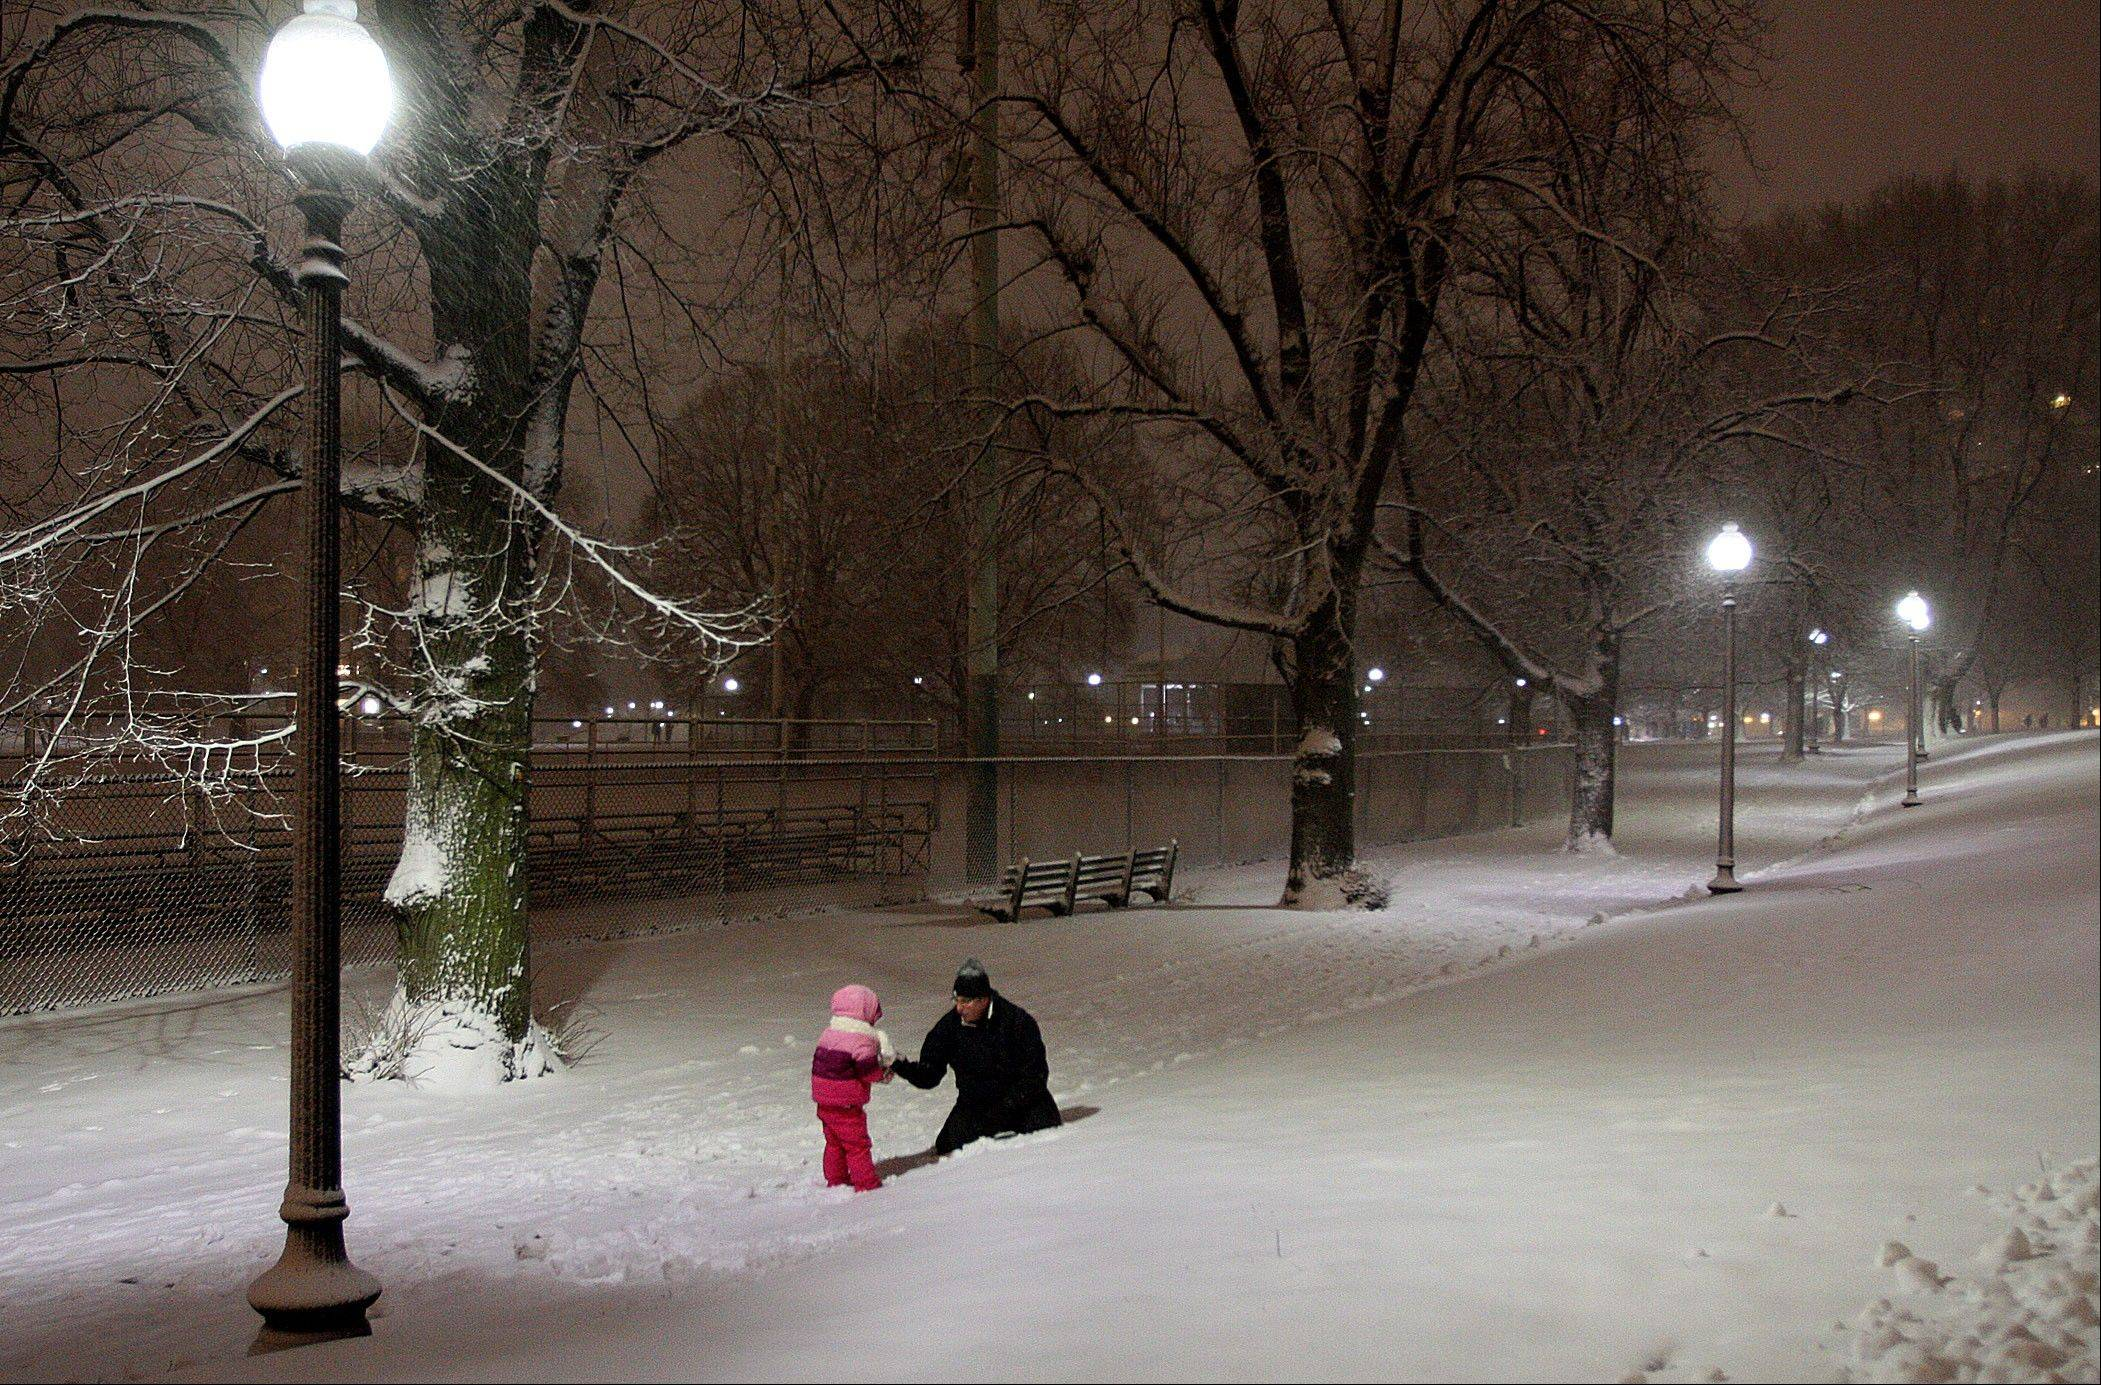 A father plays with his son on Boston Common in Boston, during a snowstorm Friday evening, Feb. 8, 2013. Snow began to fall as a massive blizzard headed for the American Northeas, sending residents scurrying to stock up on food and supplies ahead of a storm poised to dump up to 3 feet of snow from New York City to Boston and beyond.